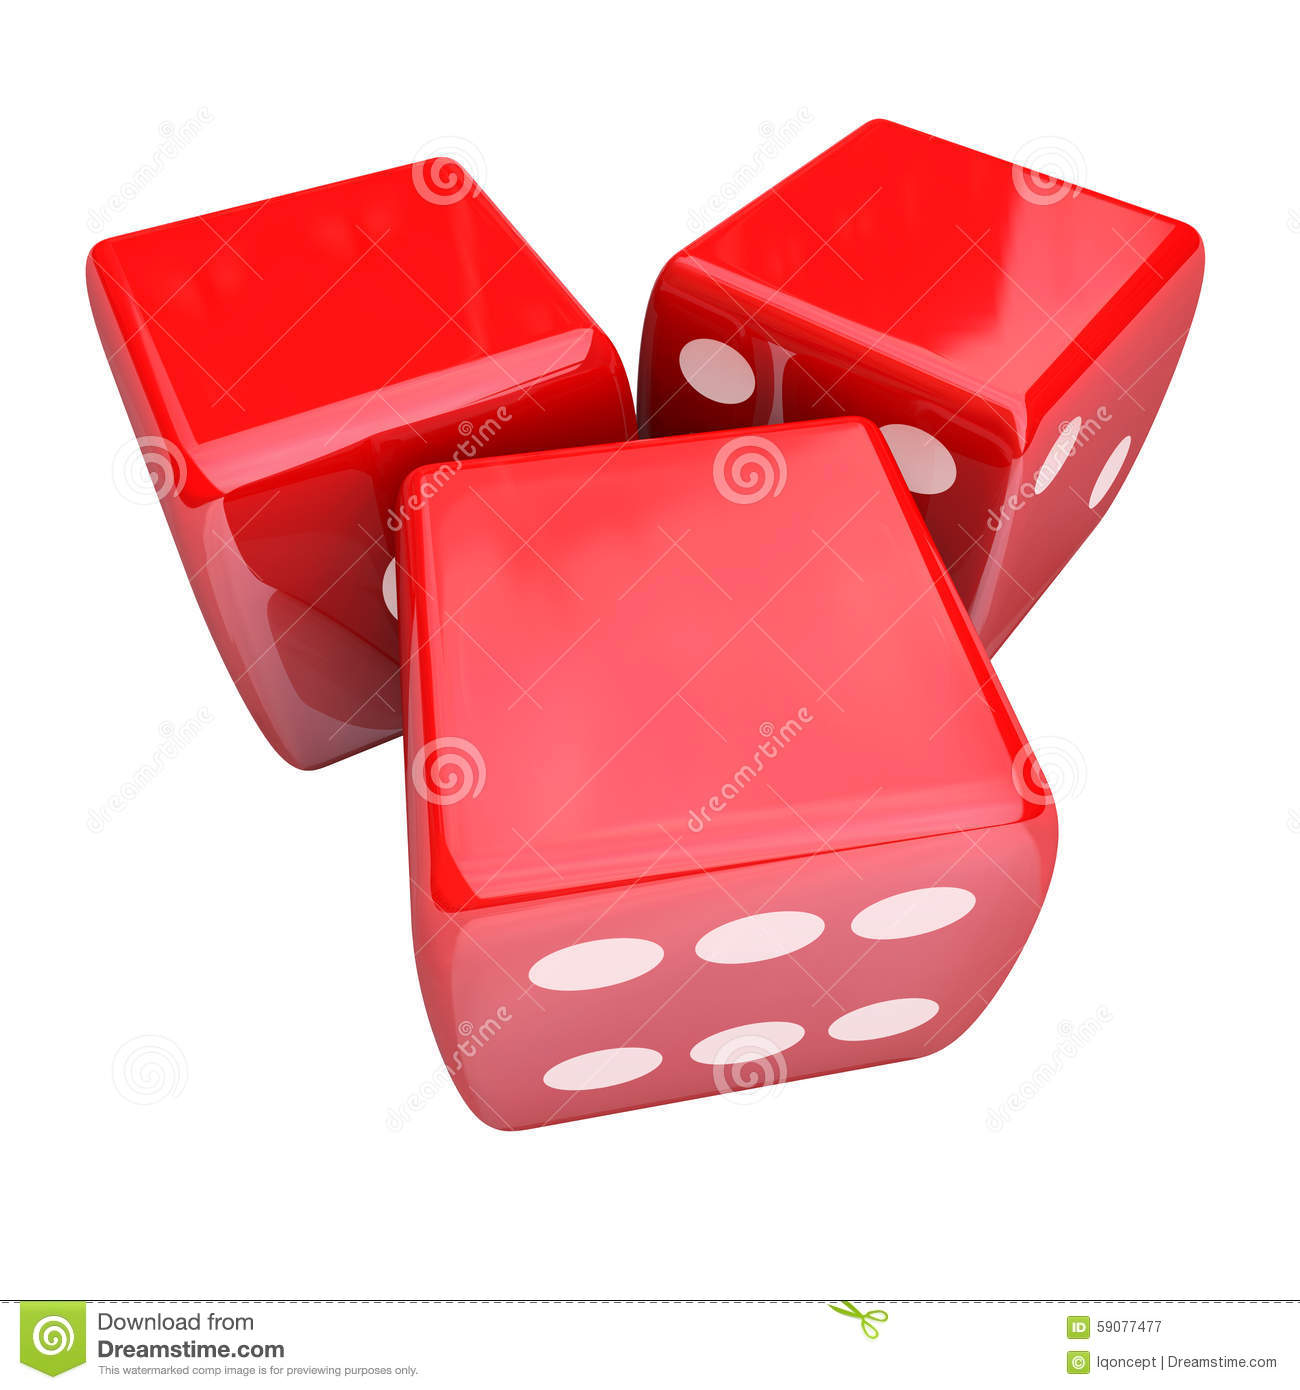 Three Red Dice Rolling Taking Chance Game 3 Blank Stock Illustration